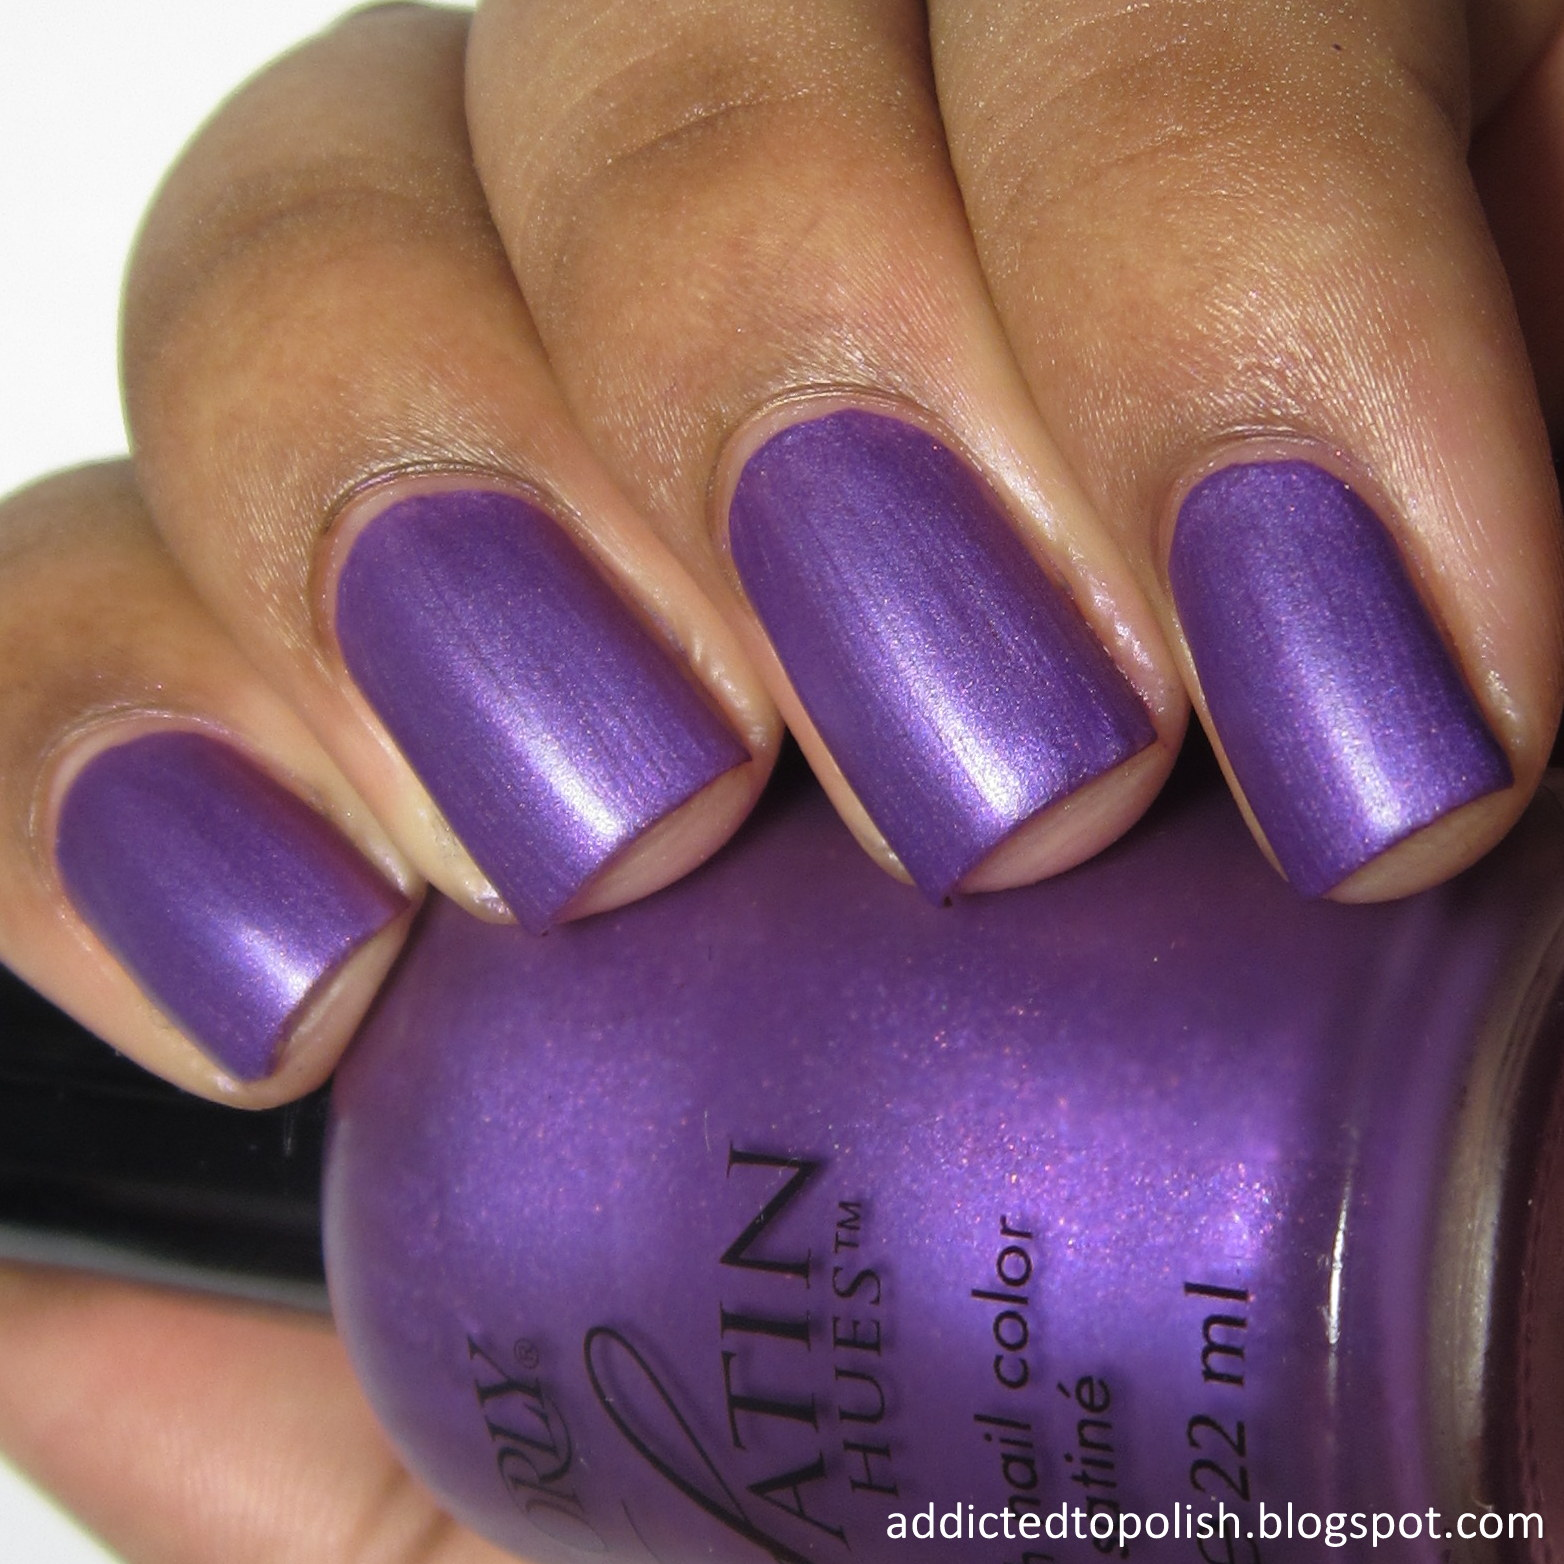 Orly Satin Royalty Satin Hues